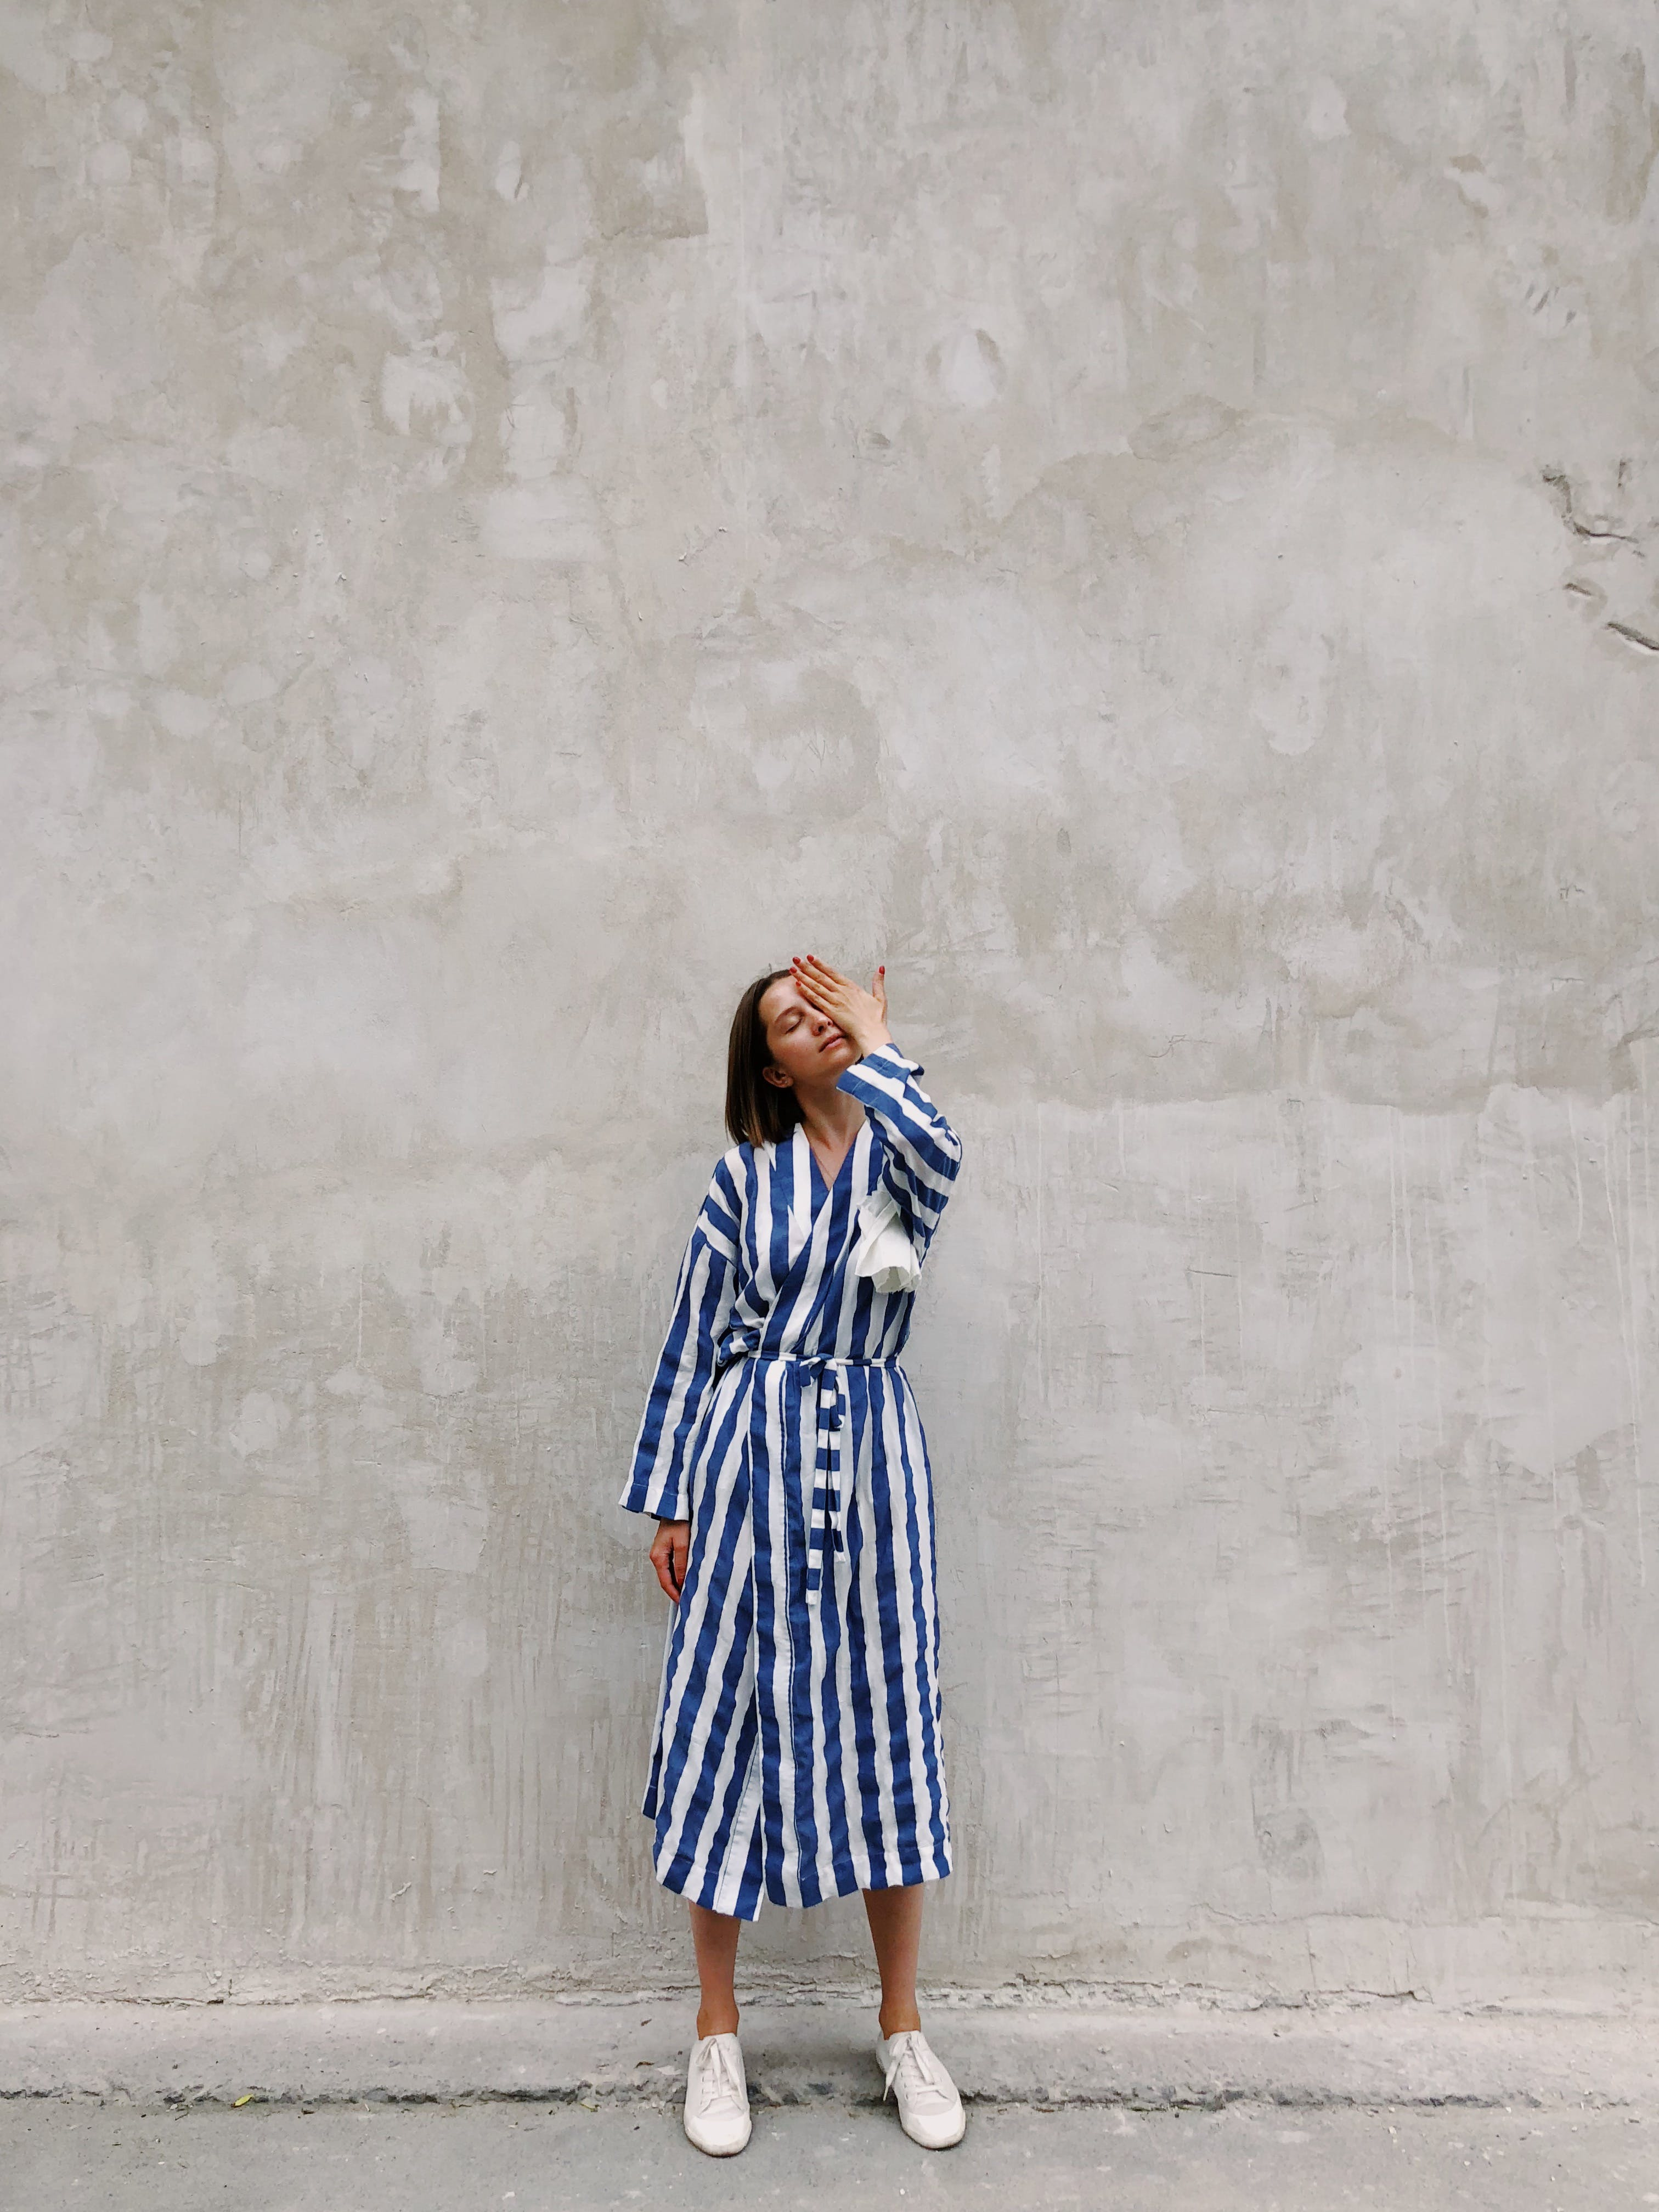 Woman in Blue and White Striped Dress Covering Her Left Eye